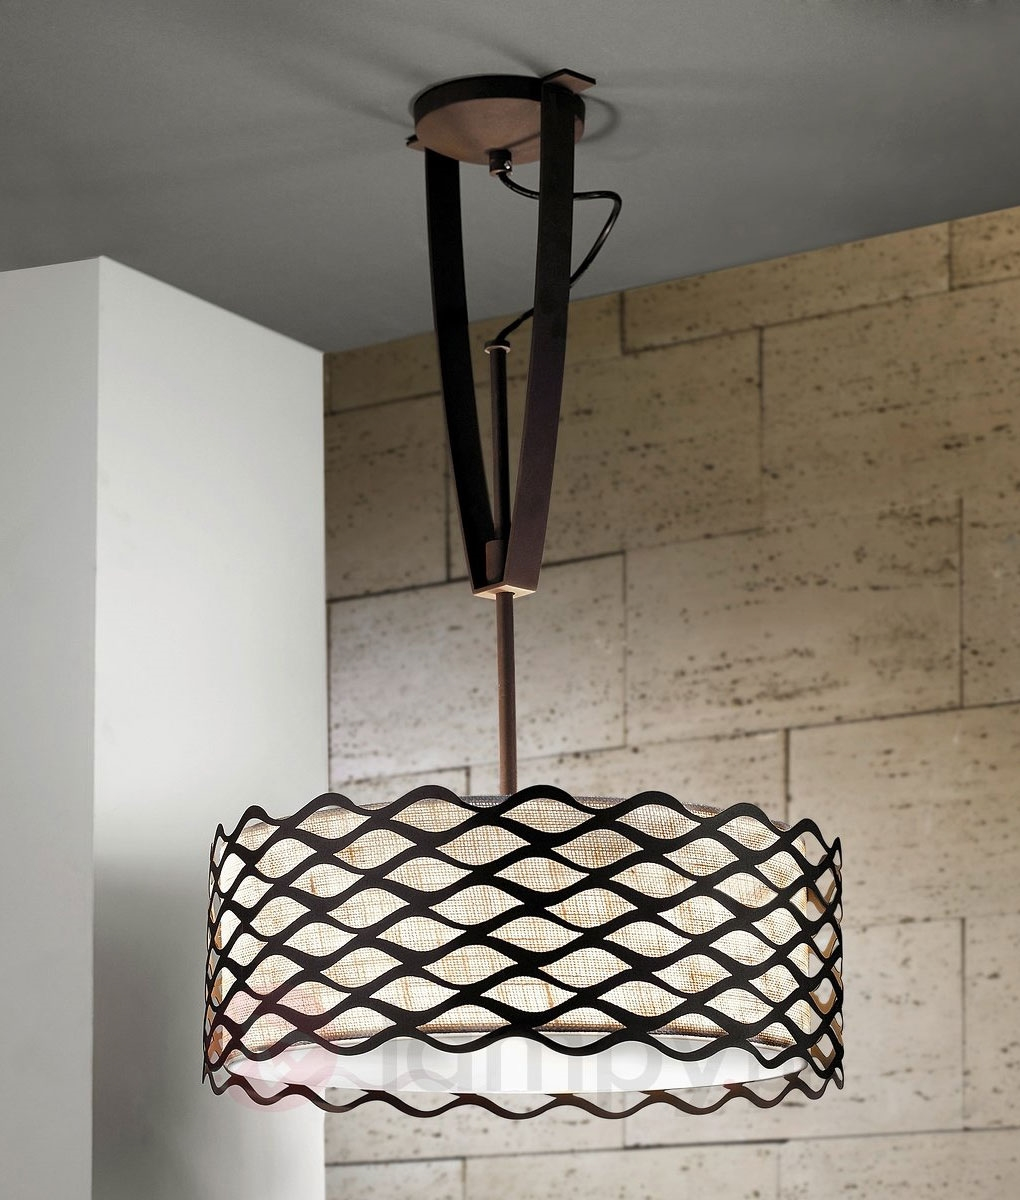 Adjustable Height Wall Lamps : Height adjustable ceiling light with woven shade and expanded metal.